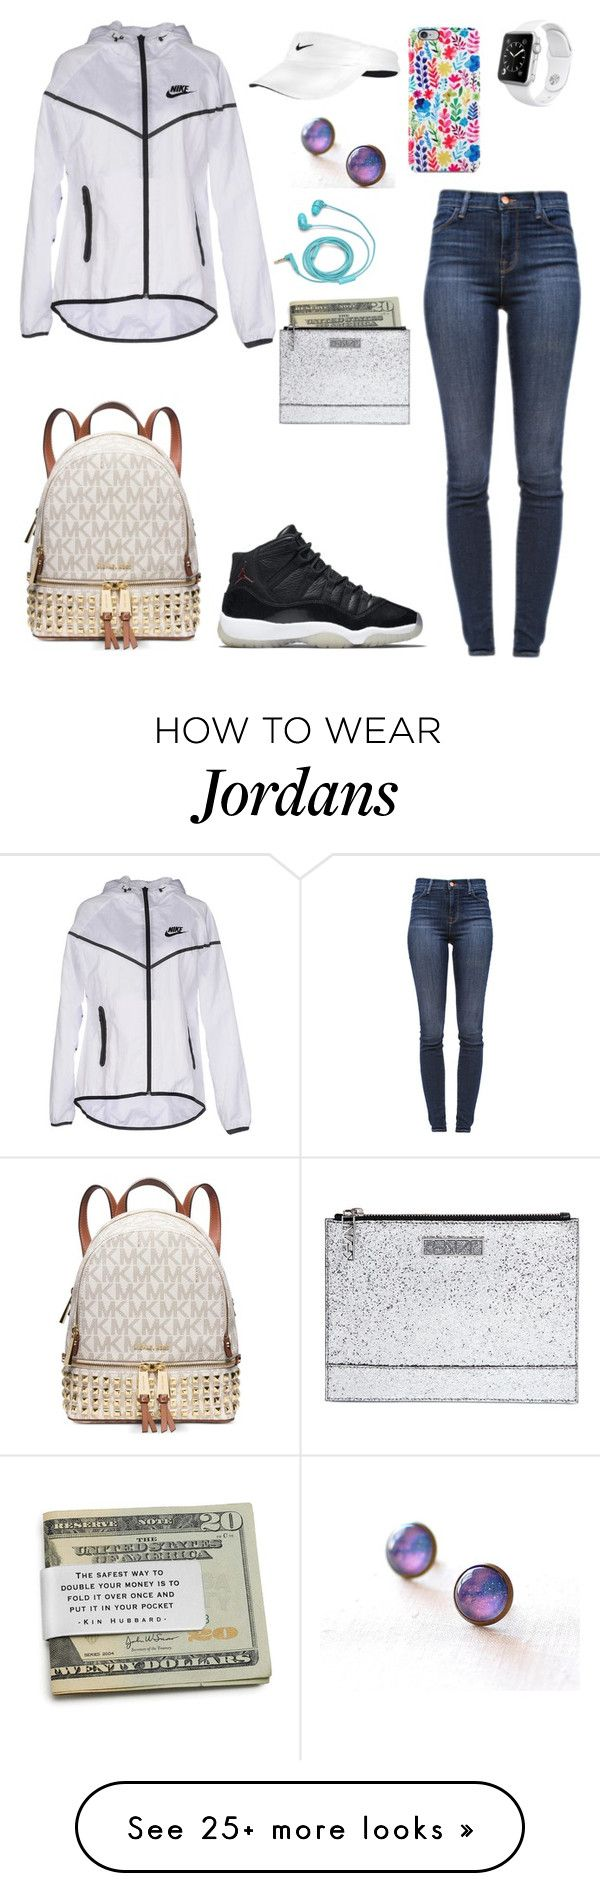 nike shoes Nike outfit ⌚️ by sweet-brownsuga on Polyvore featuring NIKE, J Brand, FOSSIL, Michael Kors and Kenzo